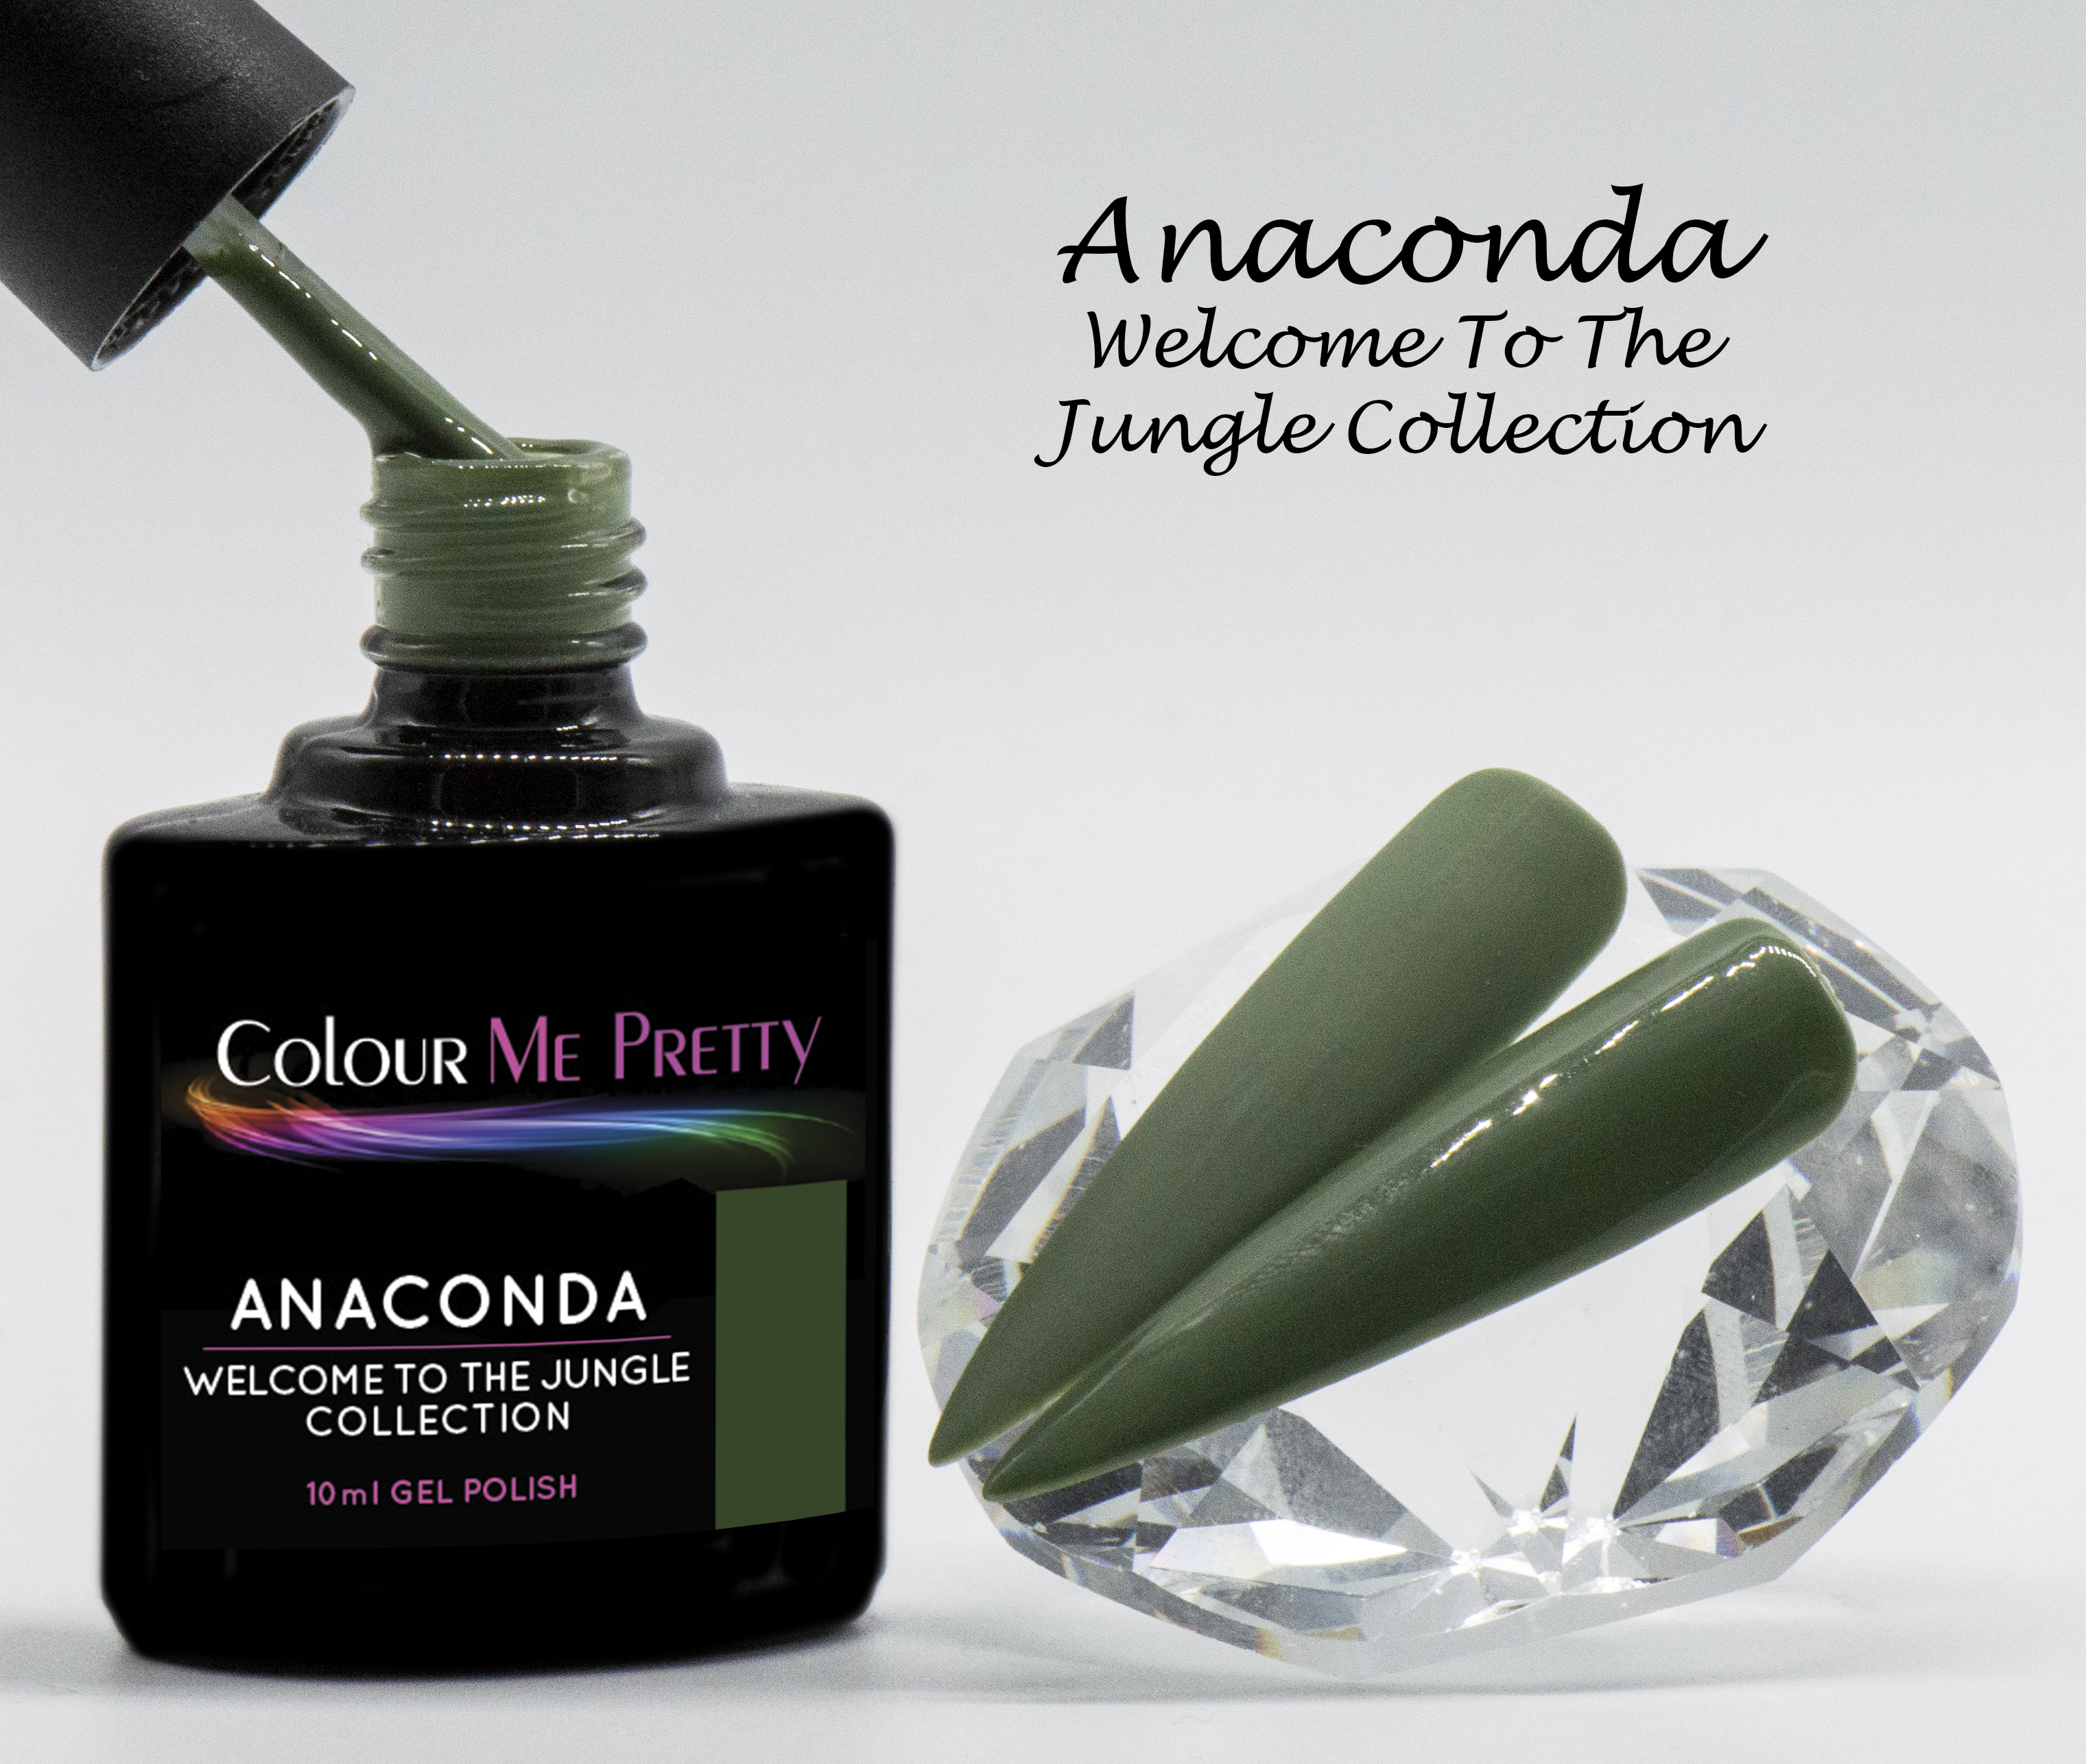 Welcome Anaconda